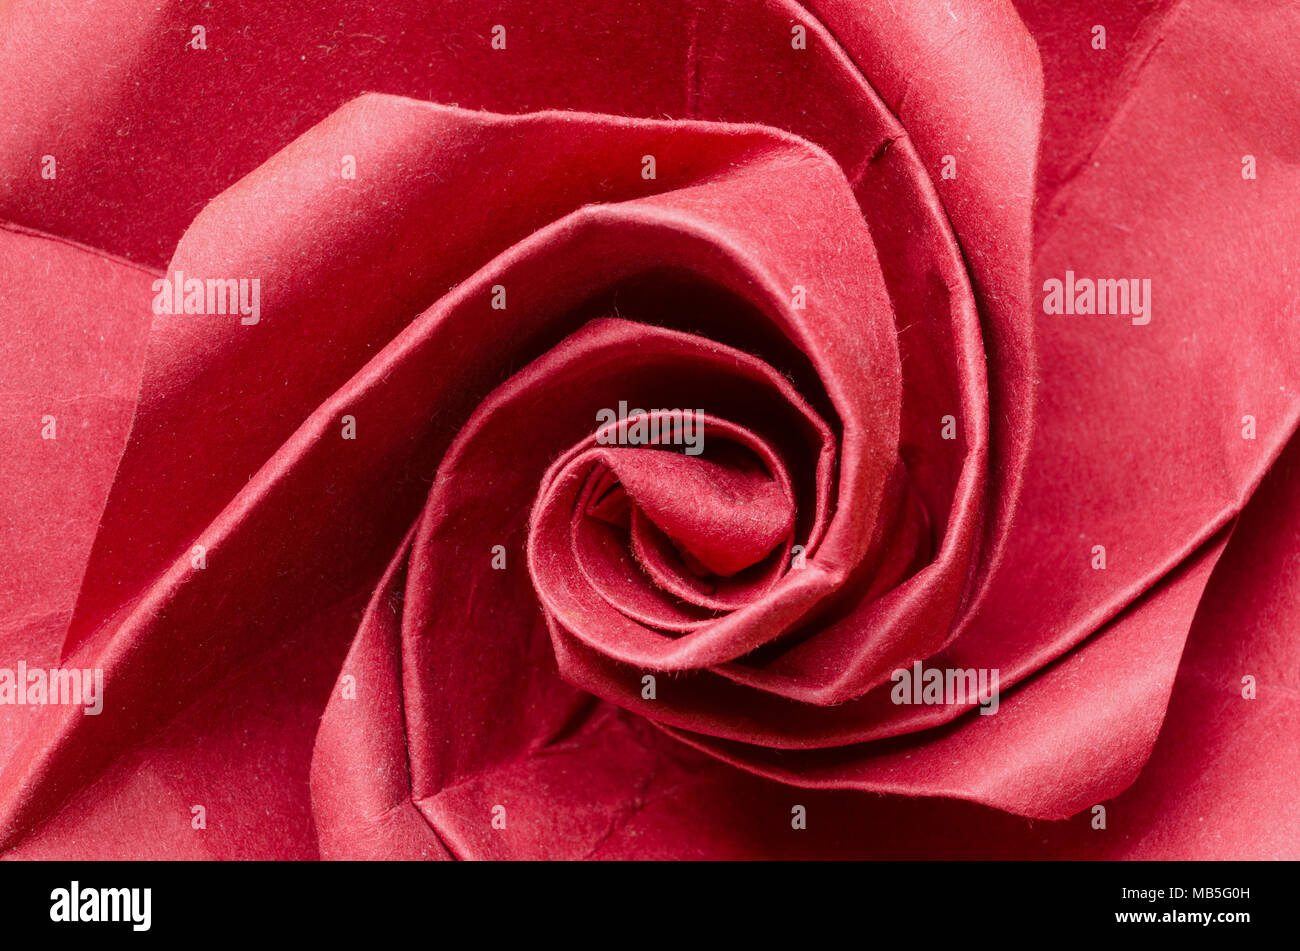 Abstract closeup of a romantic red paper origami rose flower stock abstract closeup of a romantic red paper origami rose flower mightylinksfo